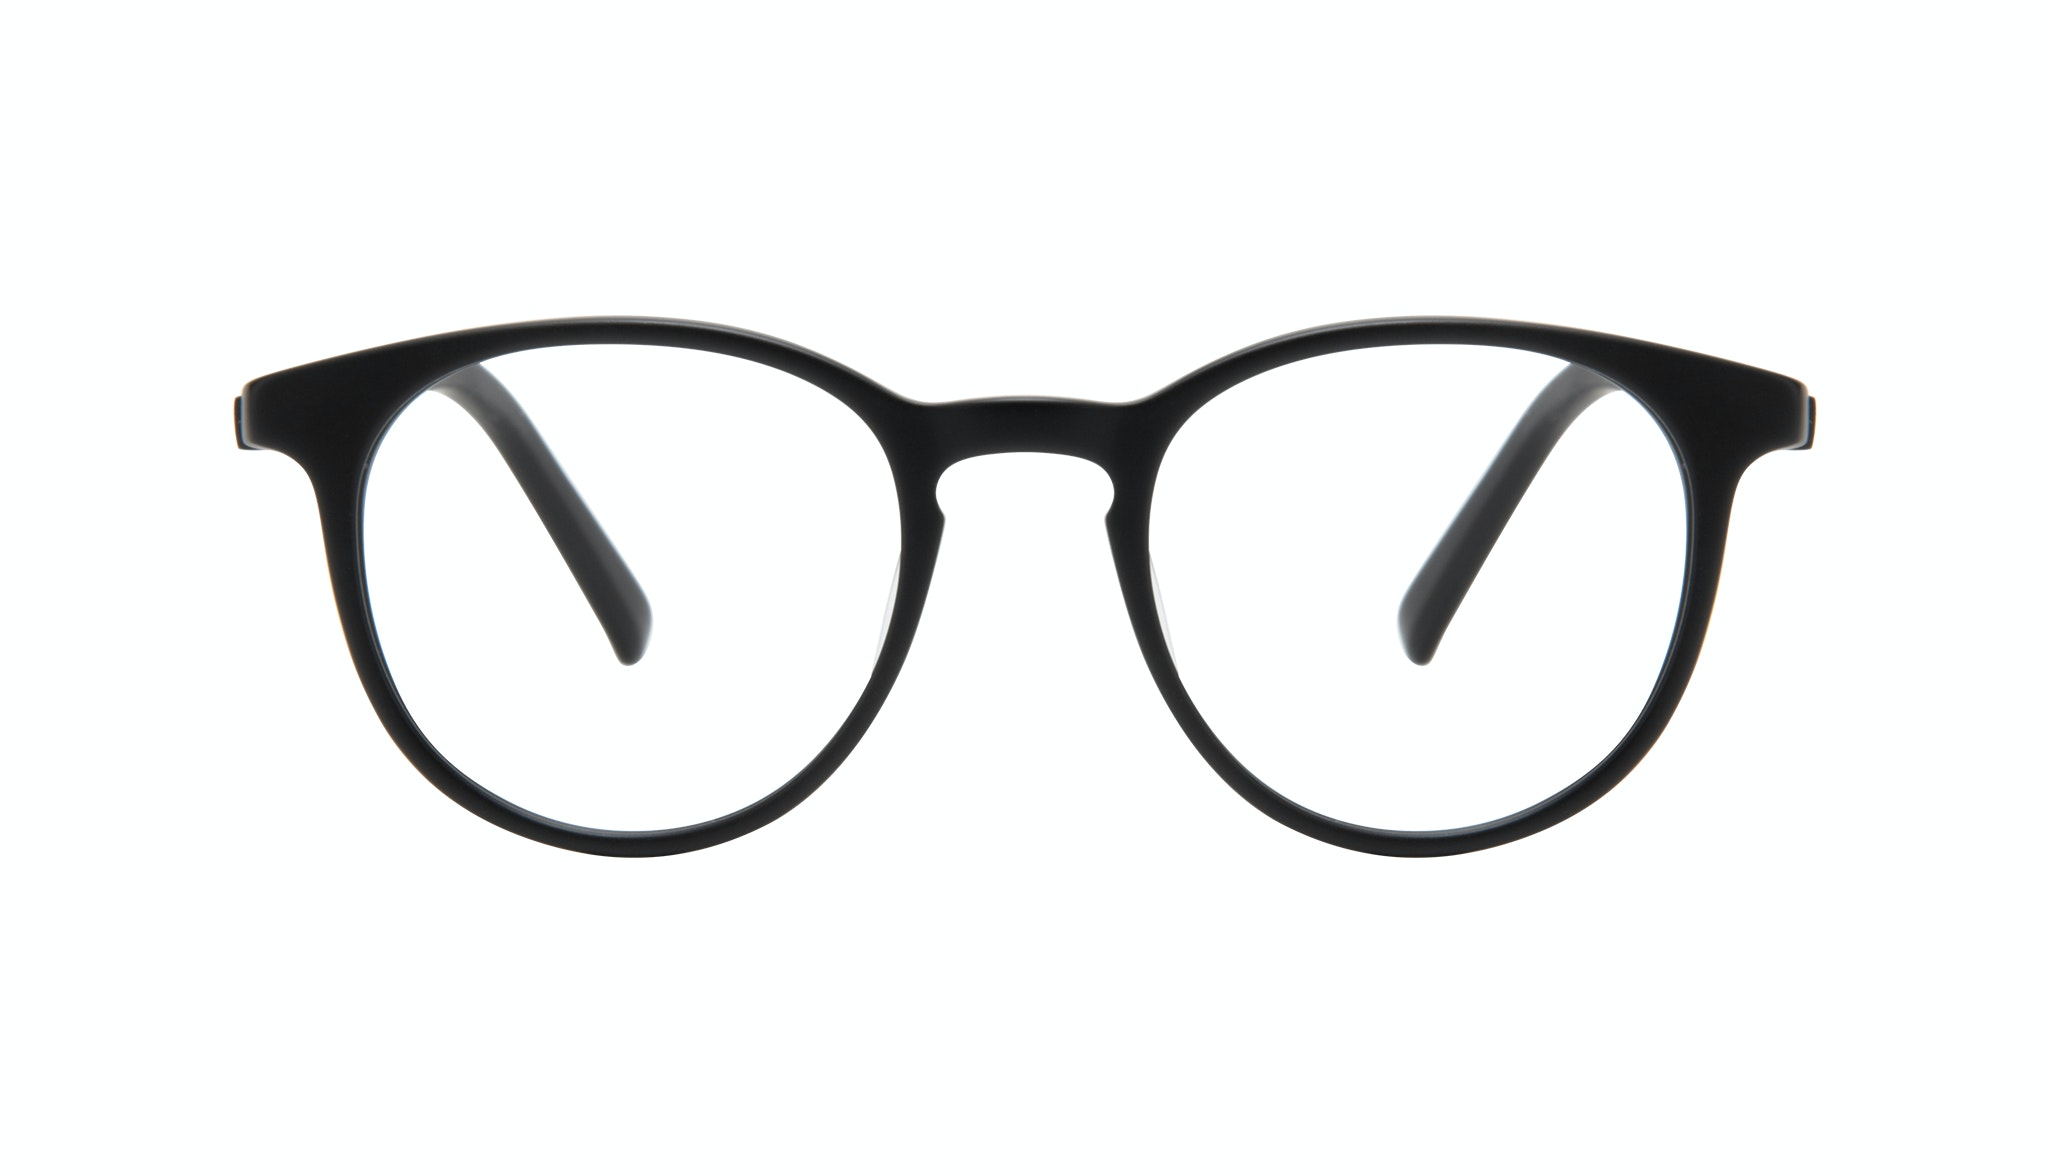 Affordable Fashion Glasses Round Eyeglasses Men Select Black Matte